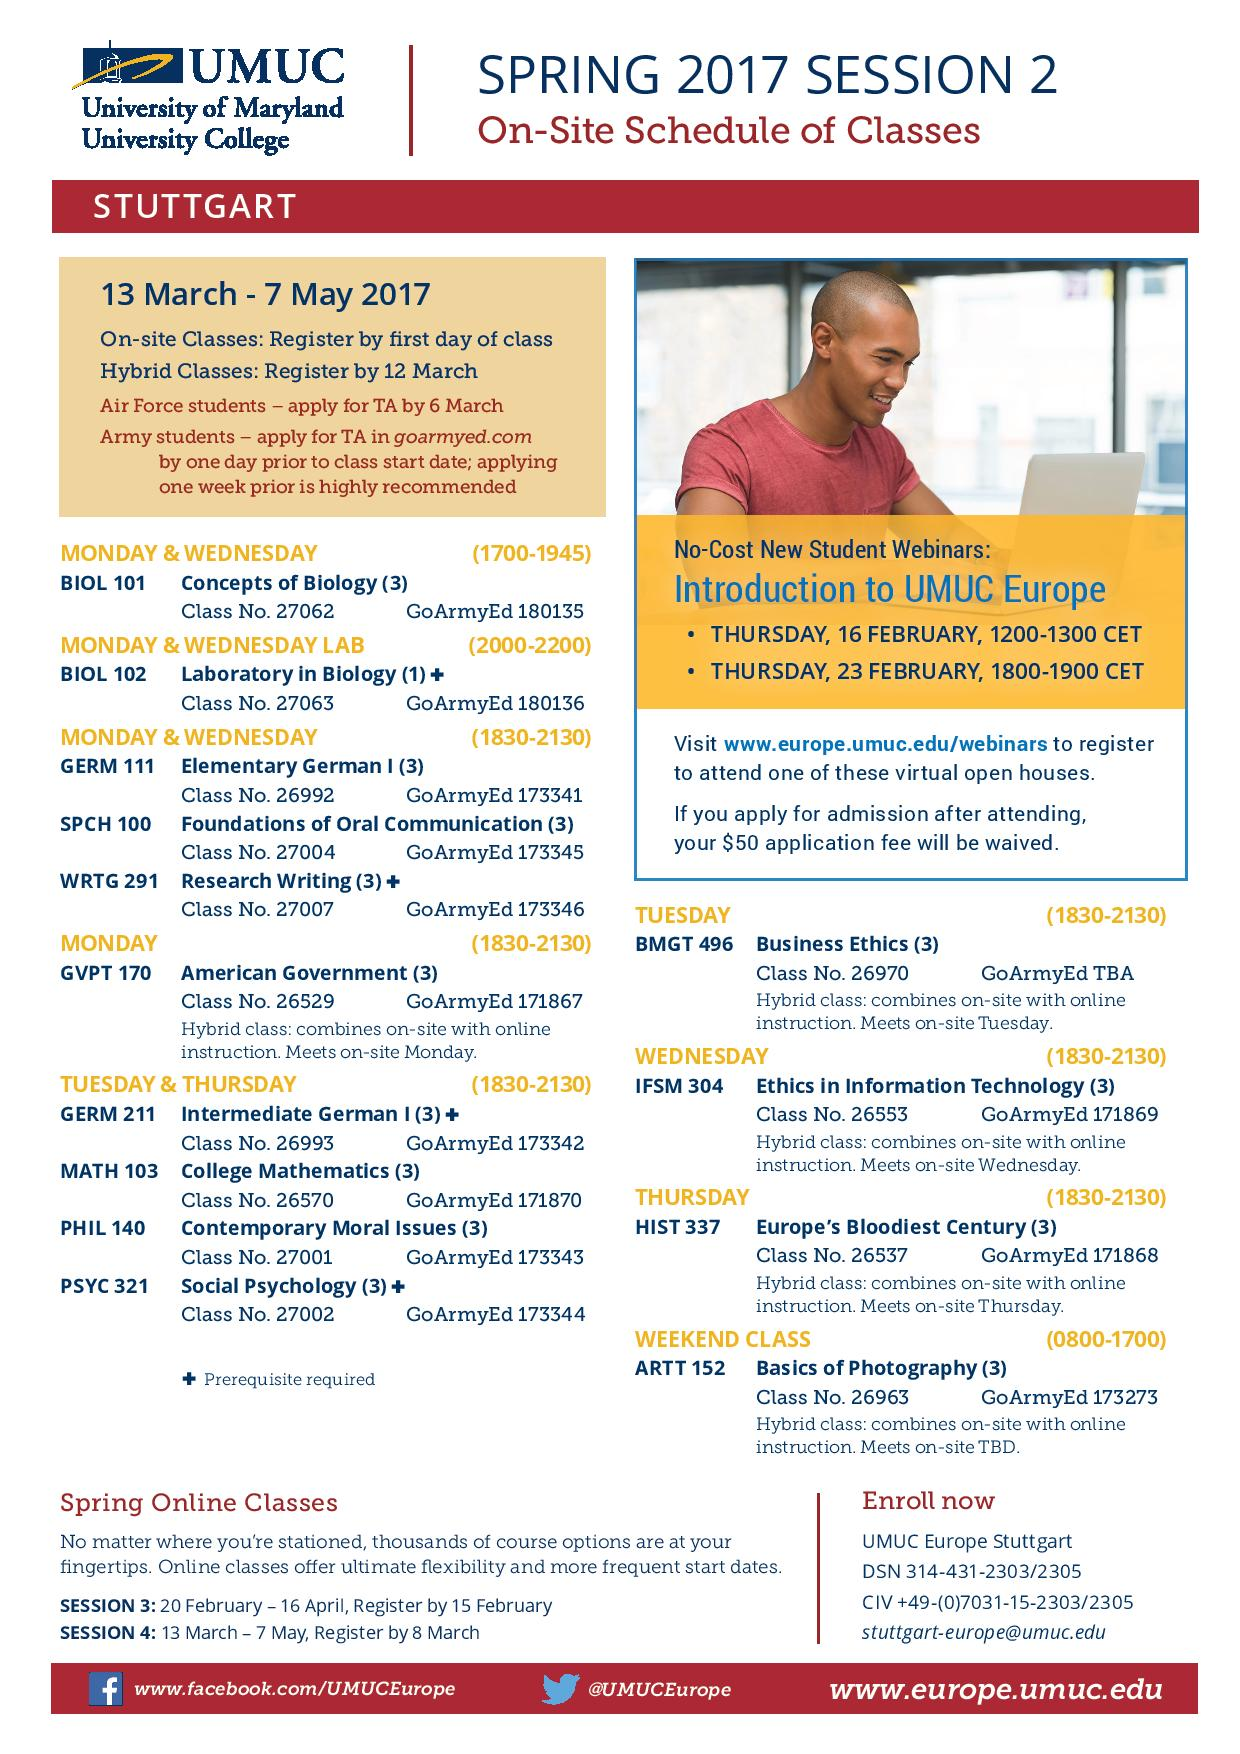 UMUC Europe early registration for Spring 2017